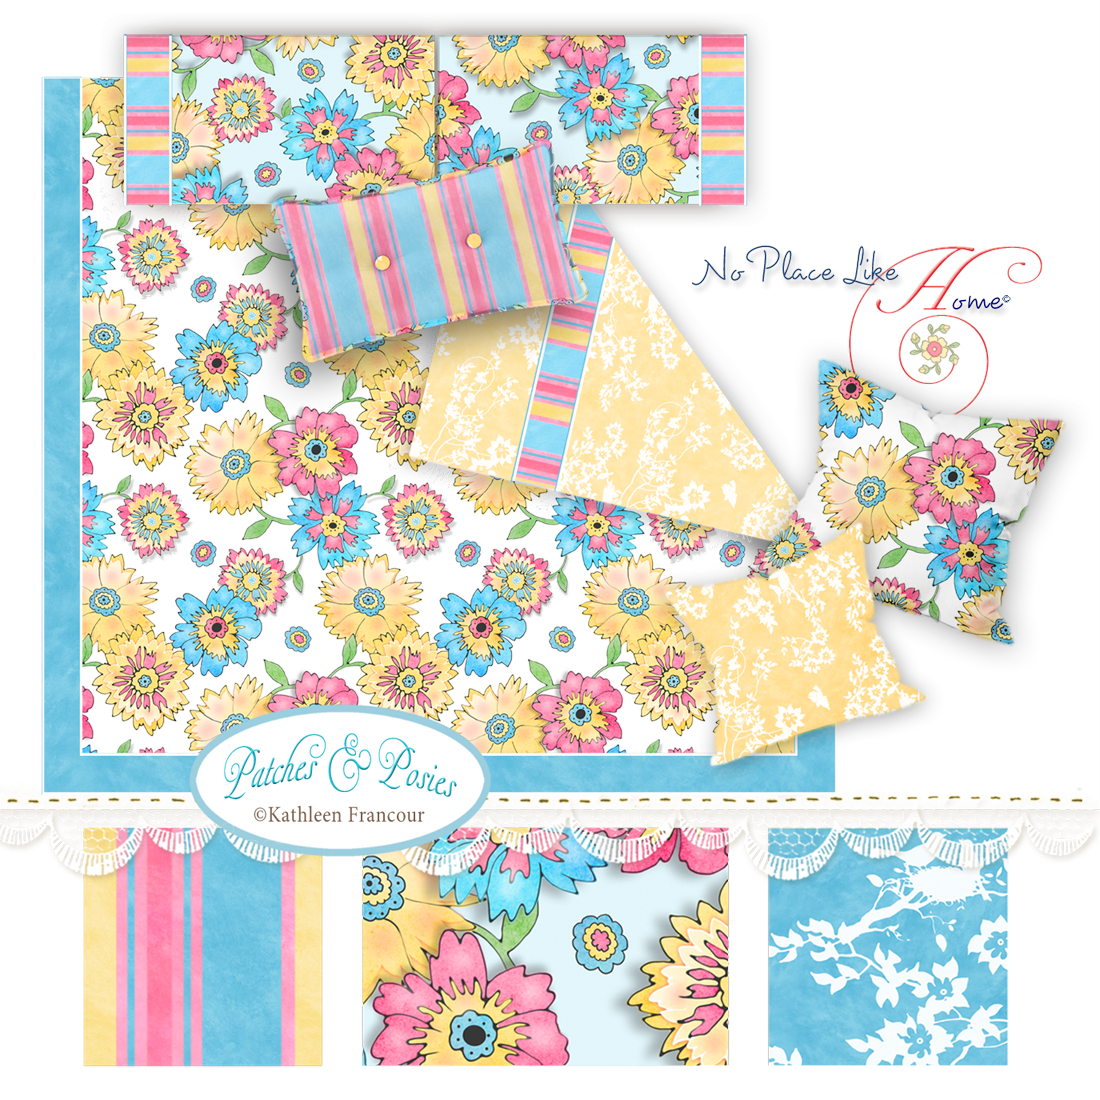 NPLH-PATCHES & POSIES GALLERY SLIDE.png